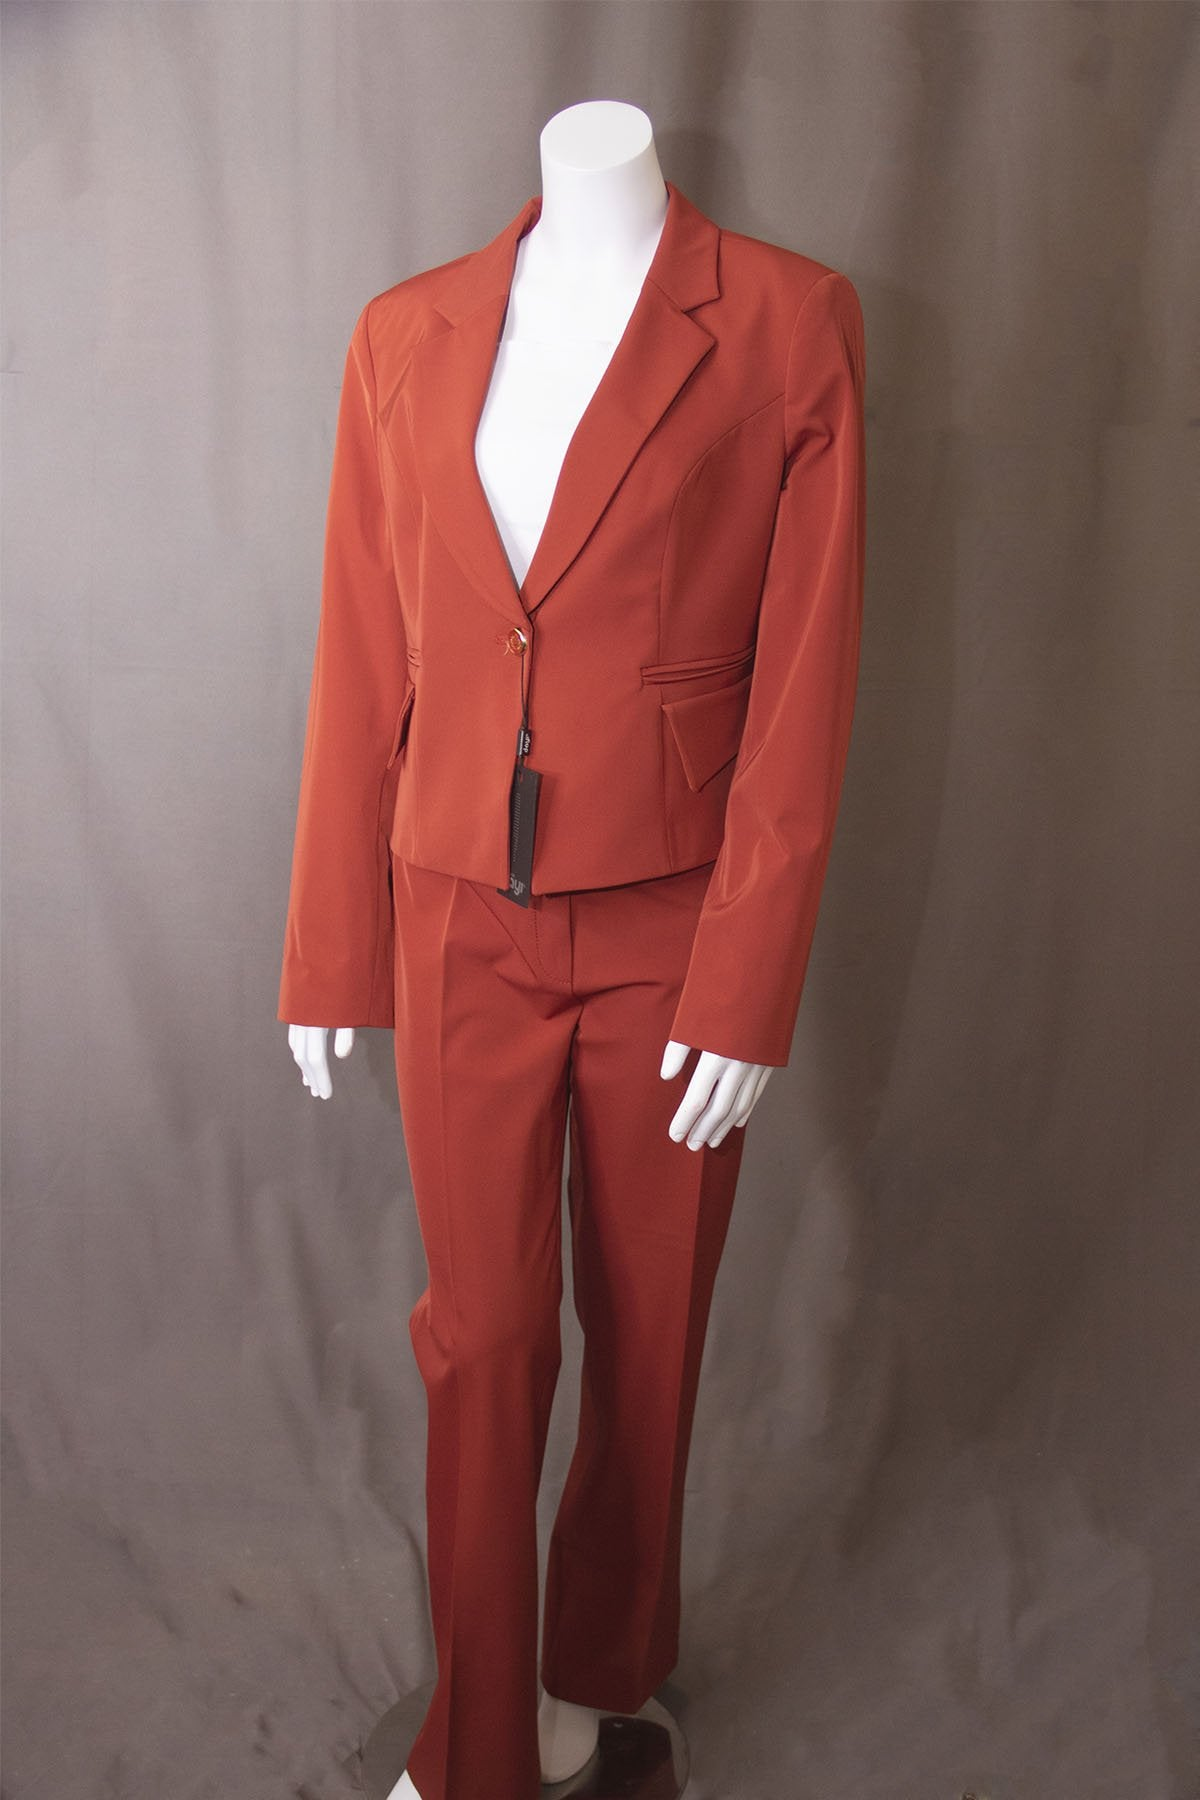 LADIES SUIT RED BUTIK DAYI TURKEY